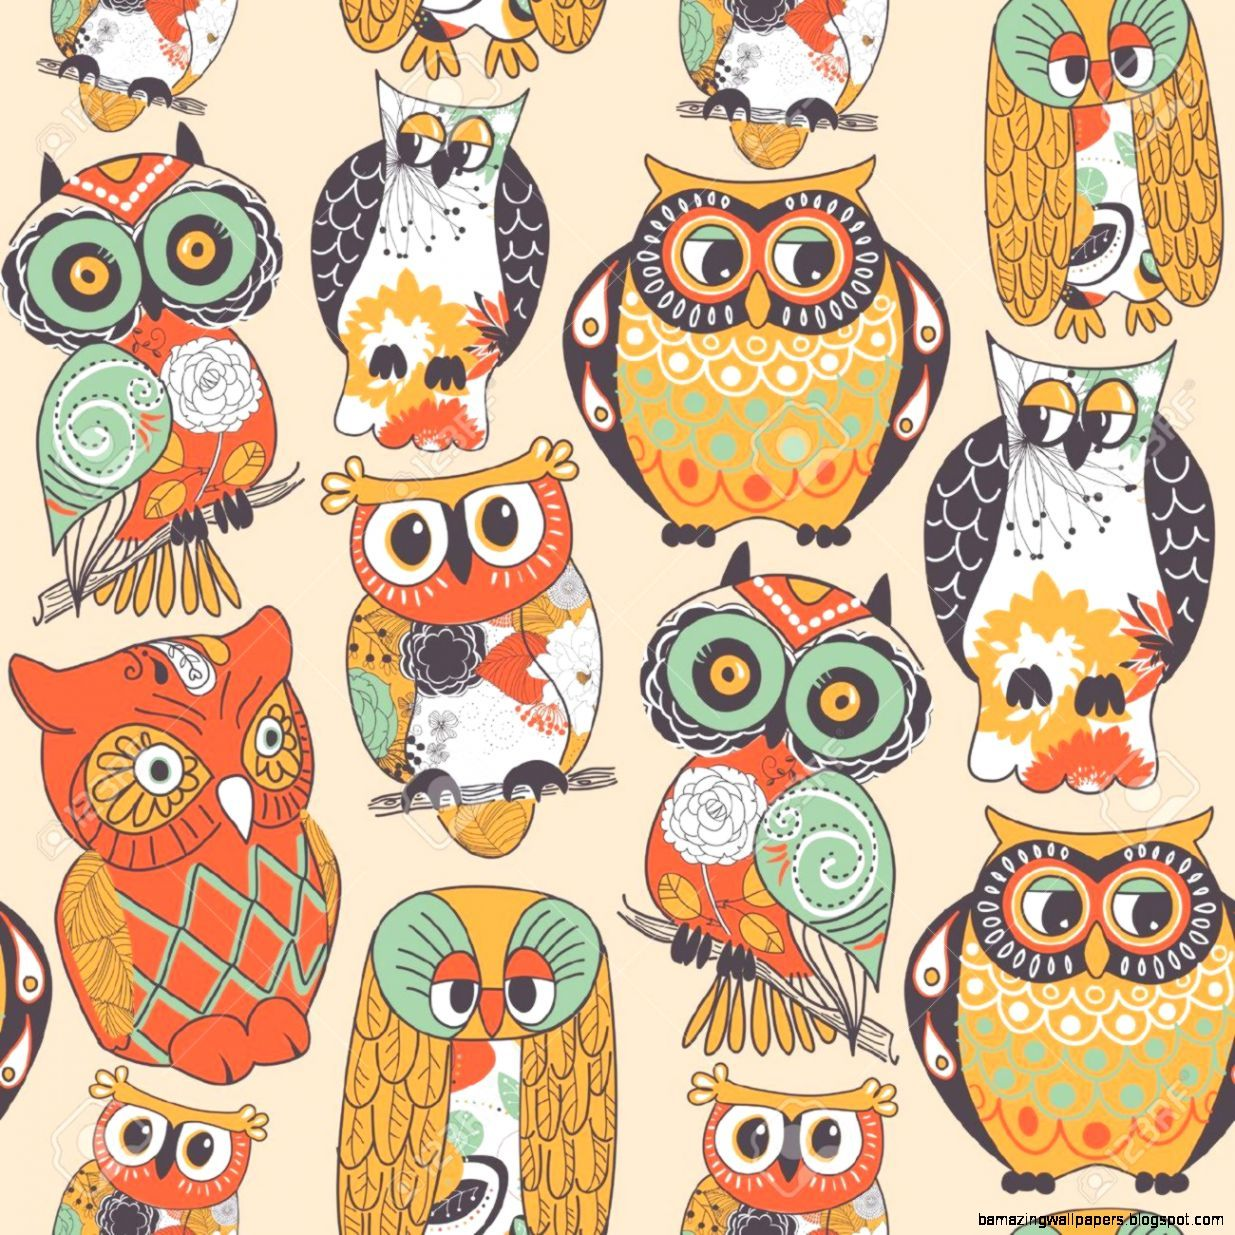 1235x1235 Vintage Owl Wallpaper | Amazing Wallpapers